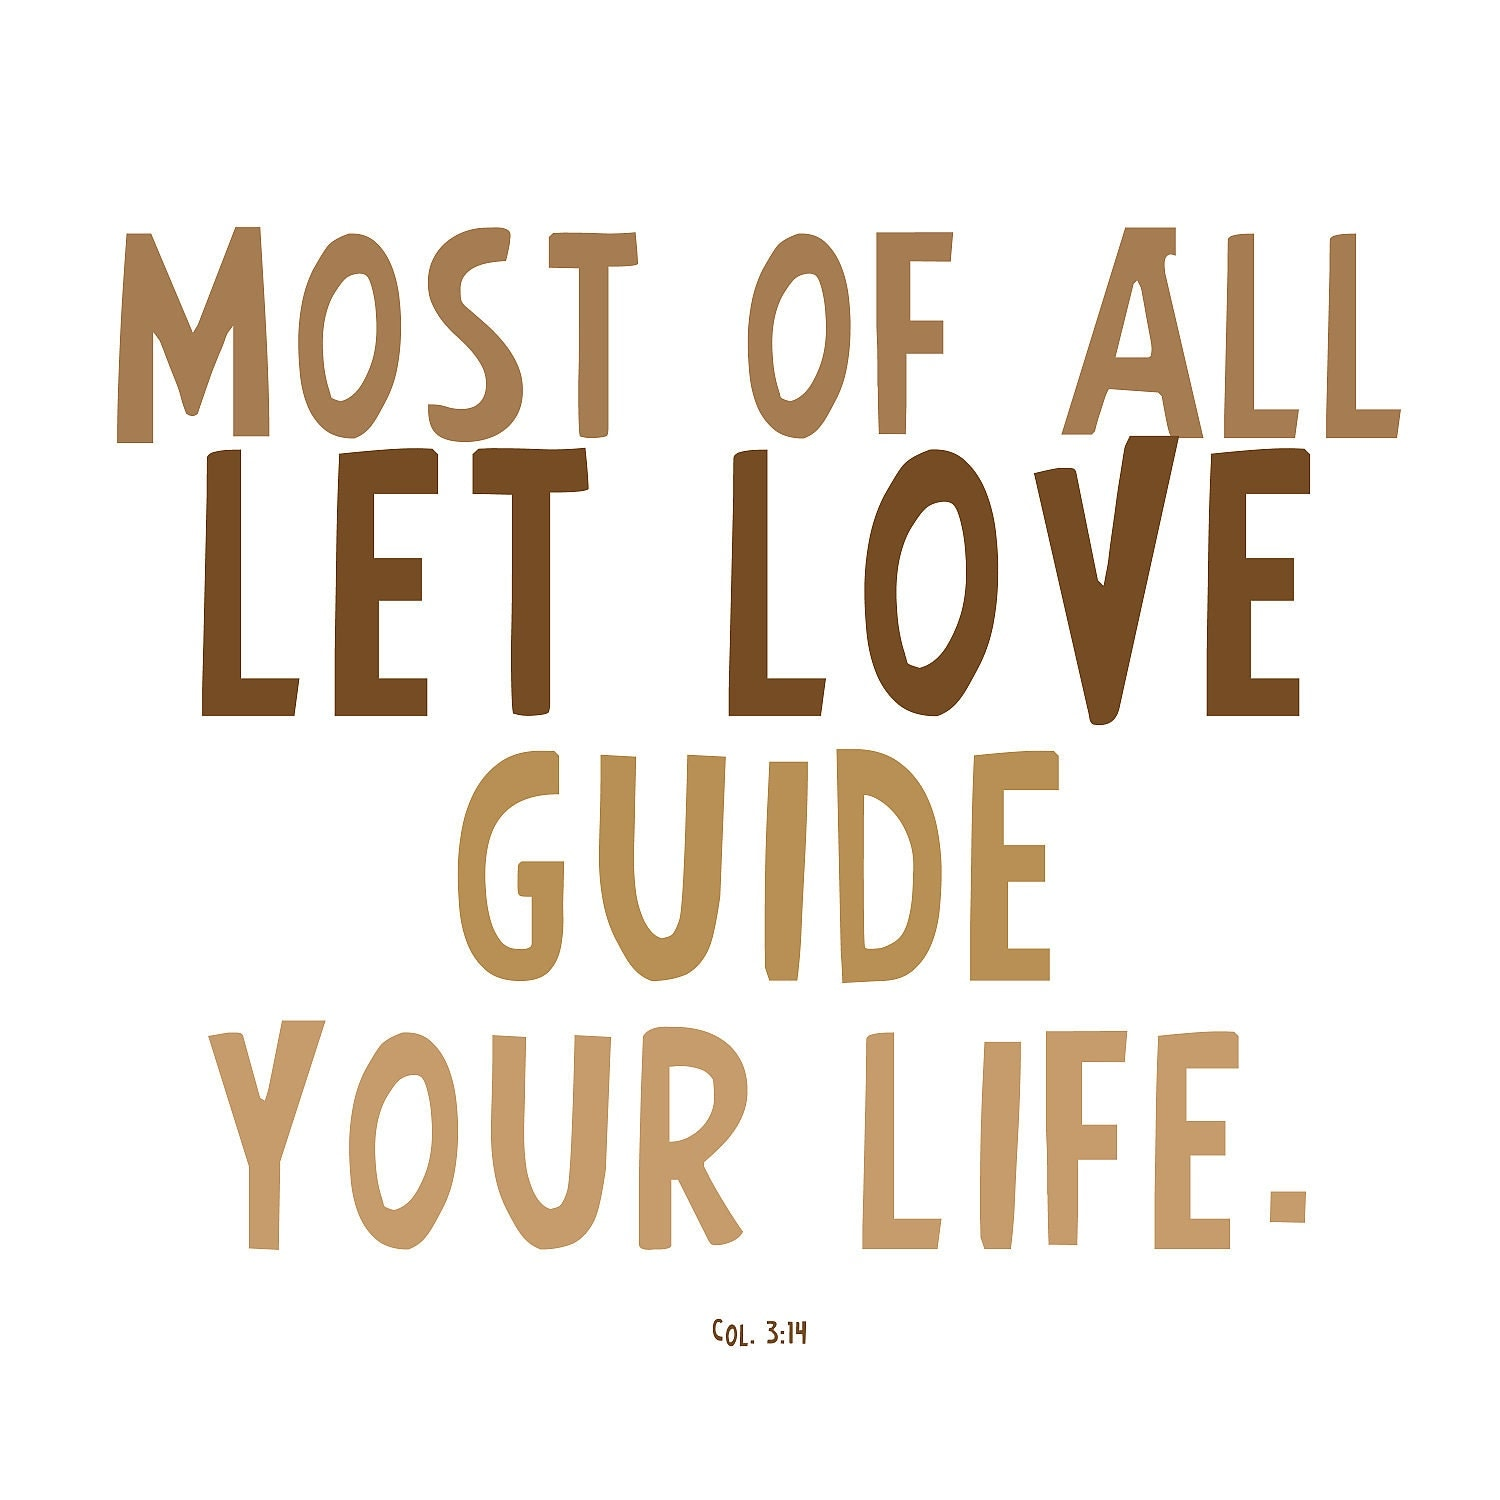 How To Quote The Bible: Print Love Quote Bible Verse Let Love Guide Your Life